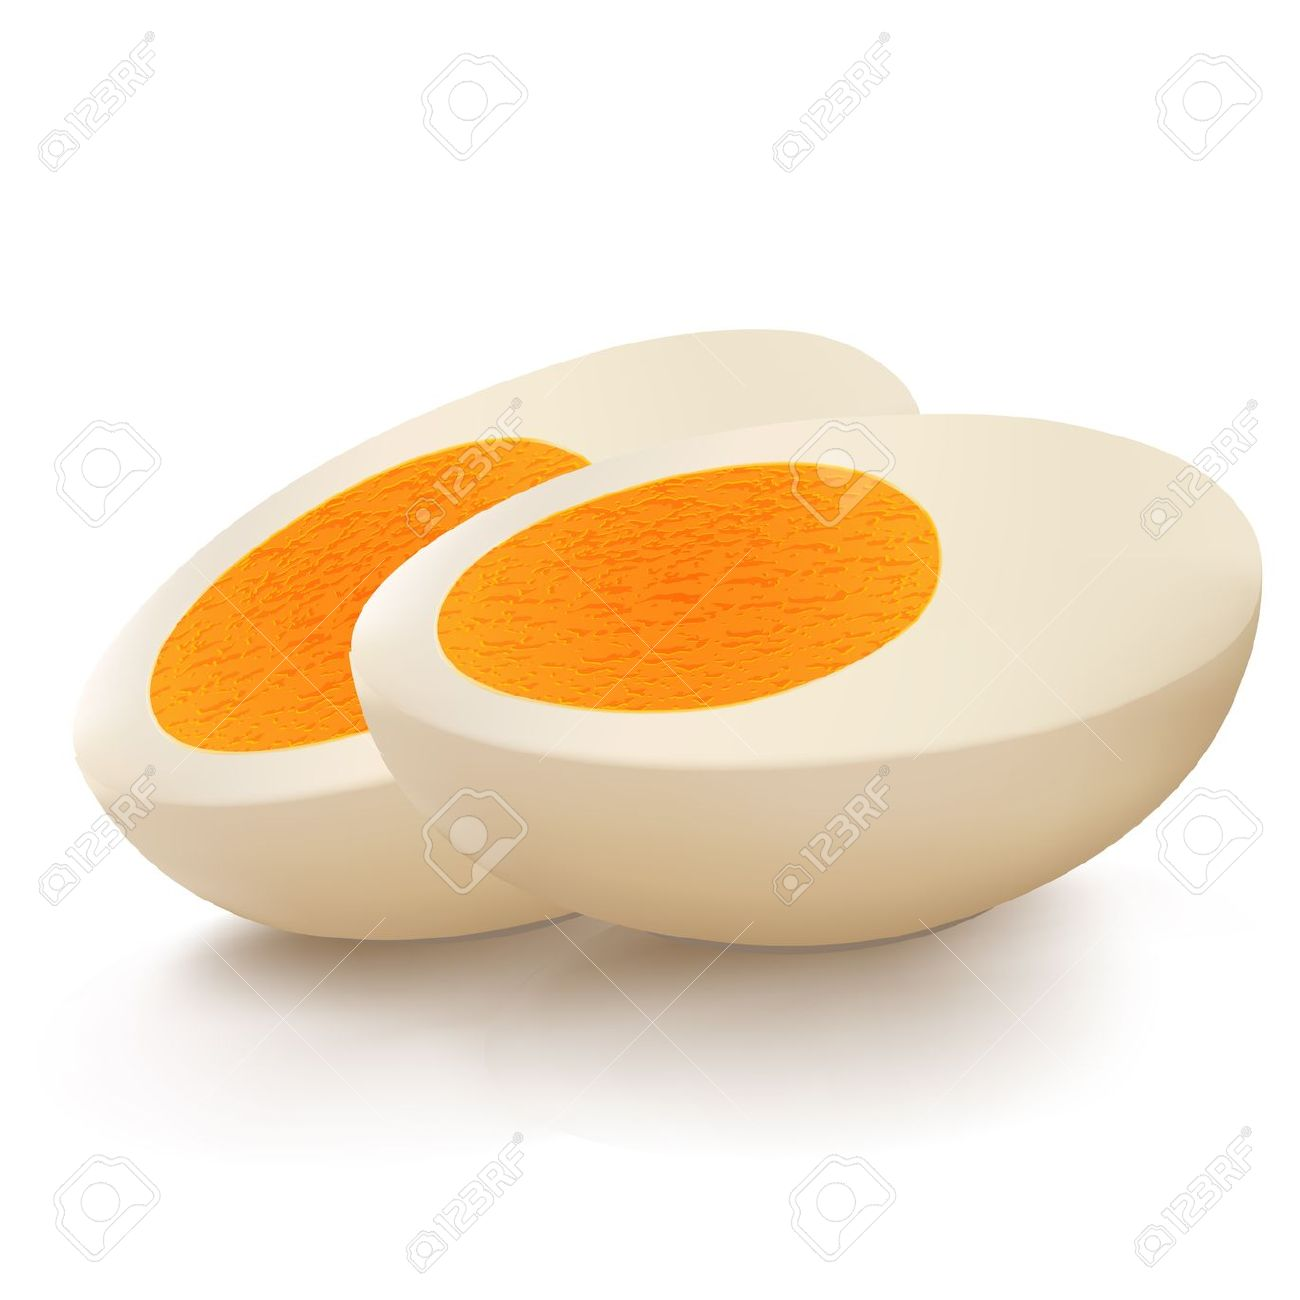 Illustration Of Boiled Egg Cut Into Pieces Kept On White.